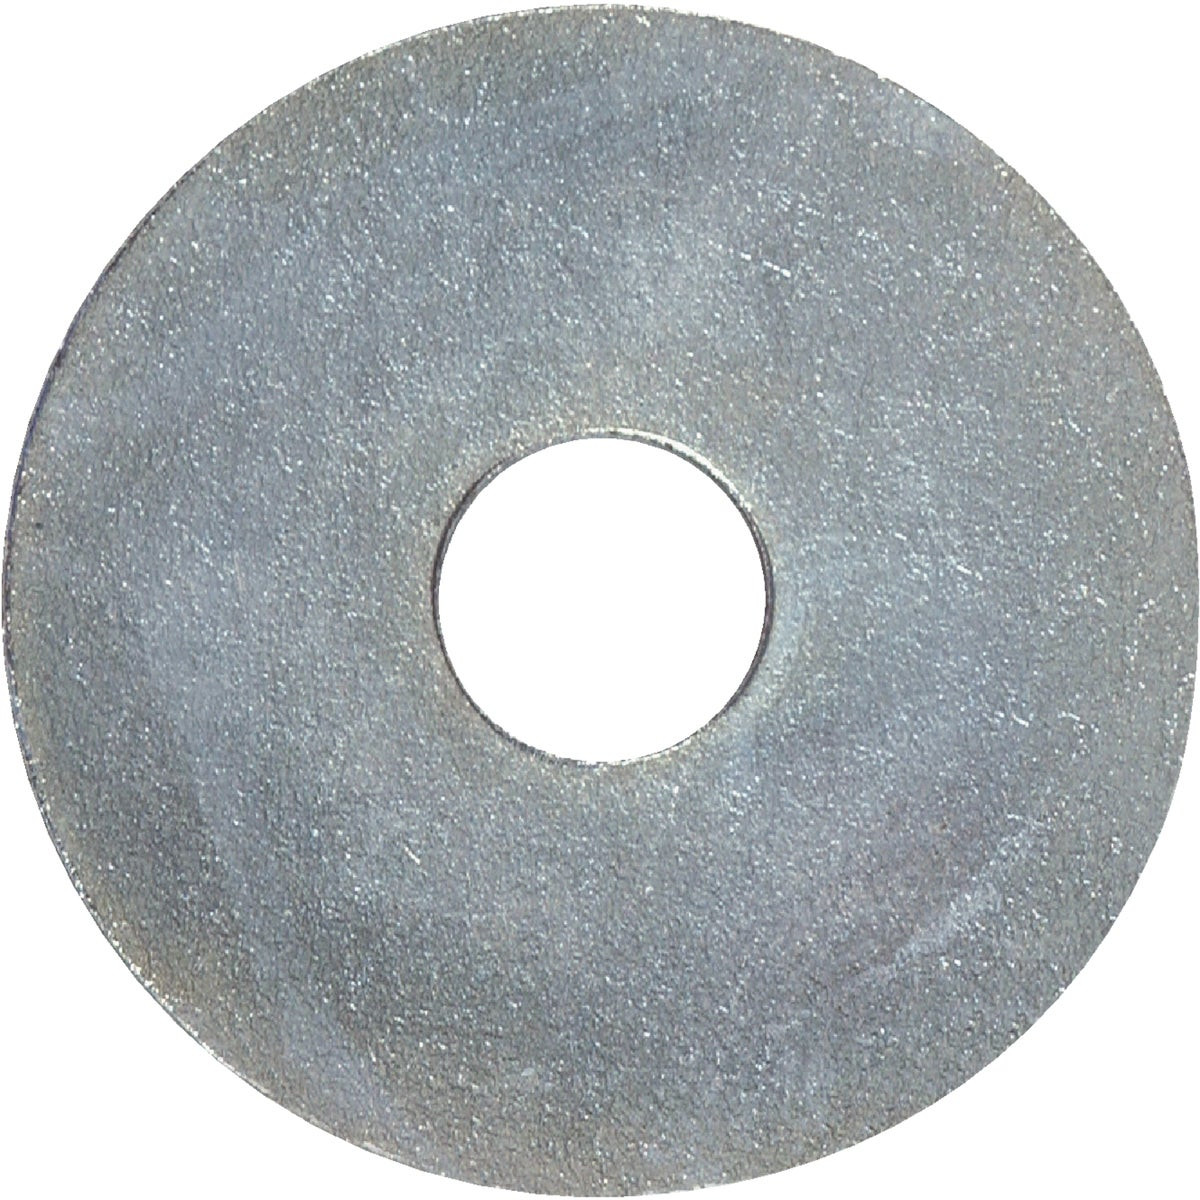 5/16X1-1/4 FENDER WASHER - 290024 by Hillman Fastener